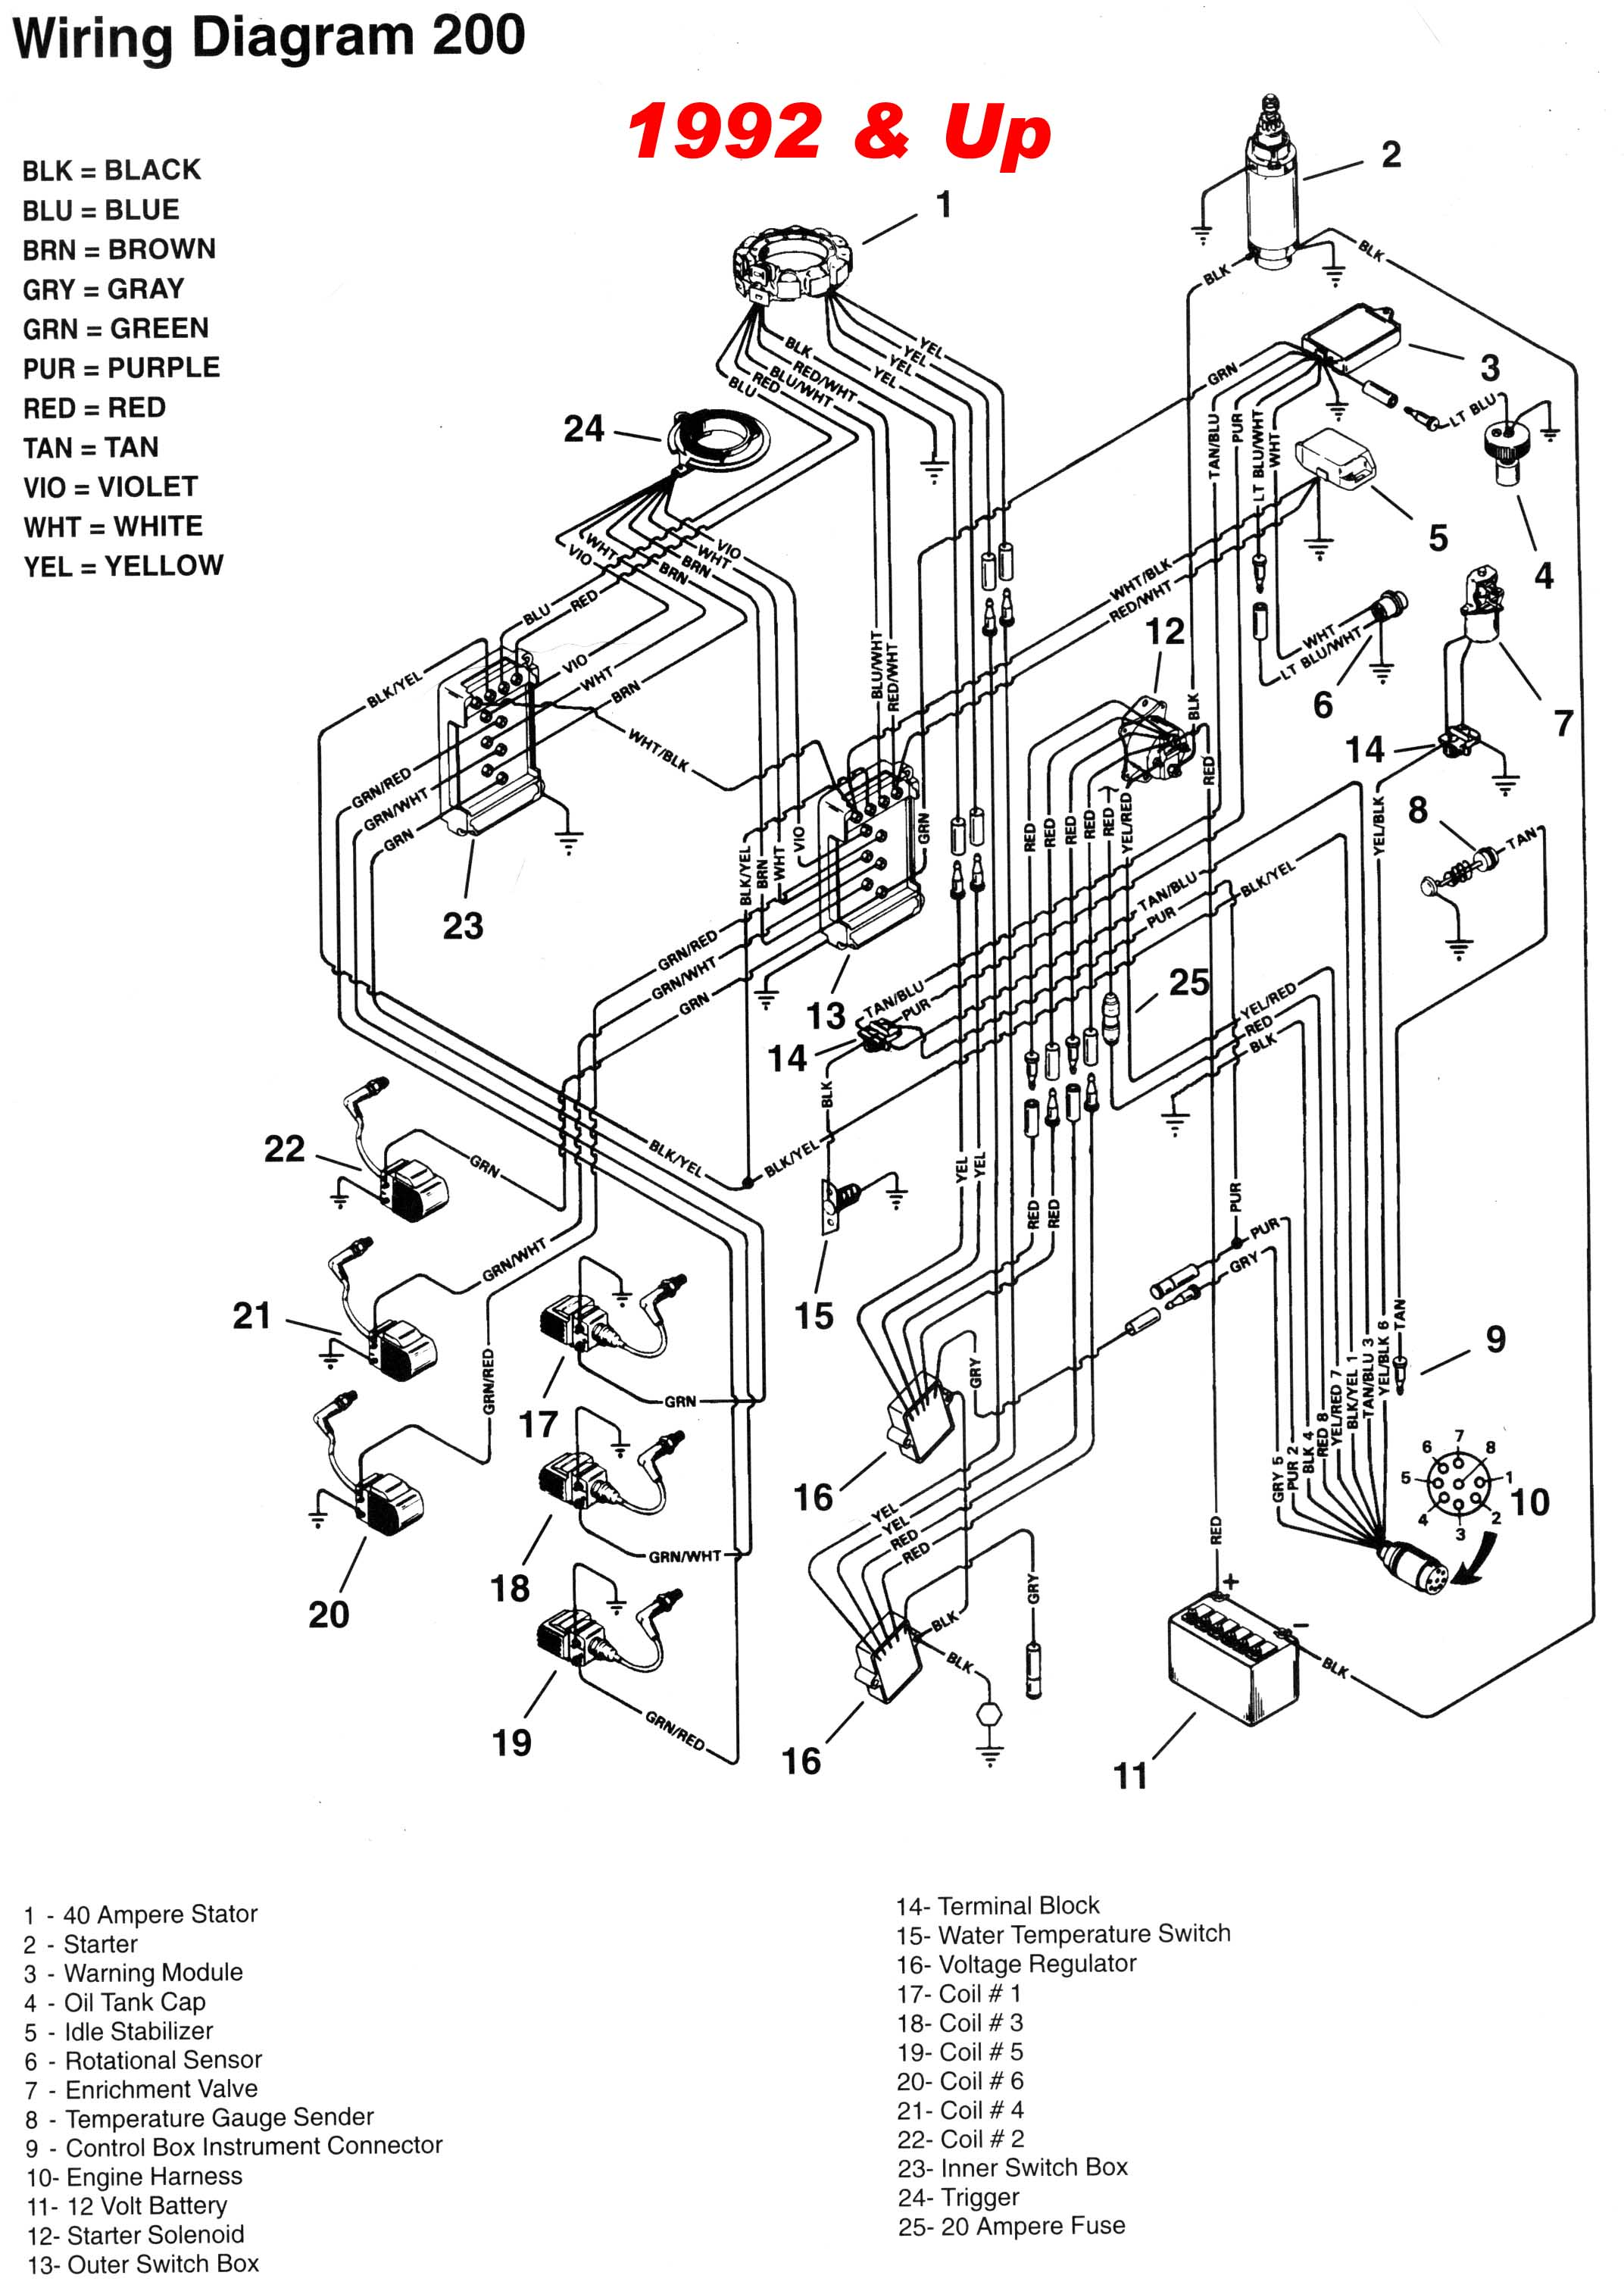 mercury 200 hp wiring diagram with Mercury on Yamaha 250 Hpdi Outboard Parts Diagram likewise 007044 likewise Volvo Penta Power Trim Schematic together with 2001 Johnson Outboard Ignition Switch Wiring Diagram likewise Mercury Outboard Wiring Harness.